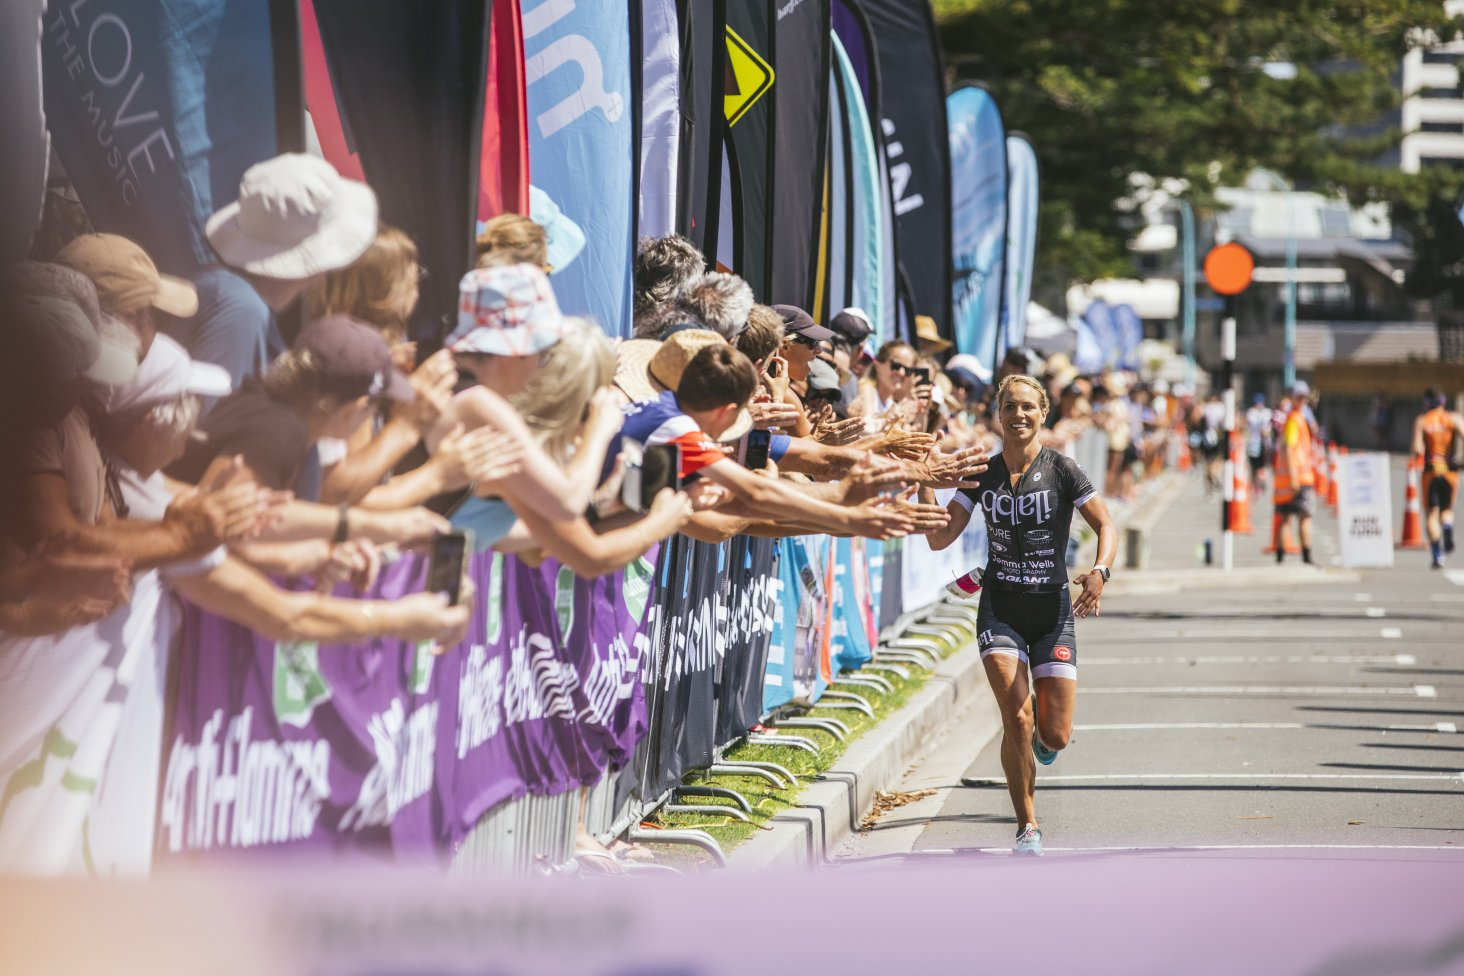 Triathlete Hannah Wells on her way to winning the 2019 Tauranga Half Ironman/Middle Distance National Championships.  Photo credit: Jemma Wells Photography